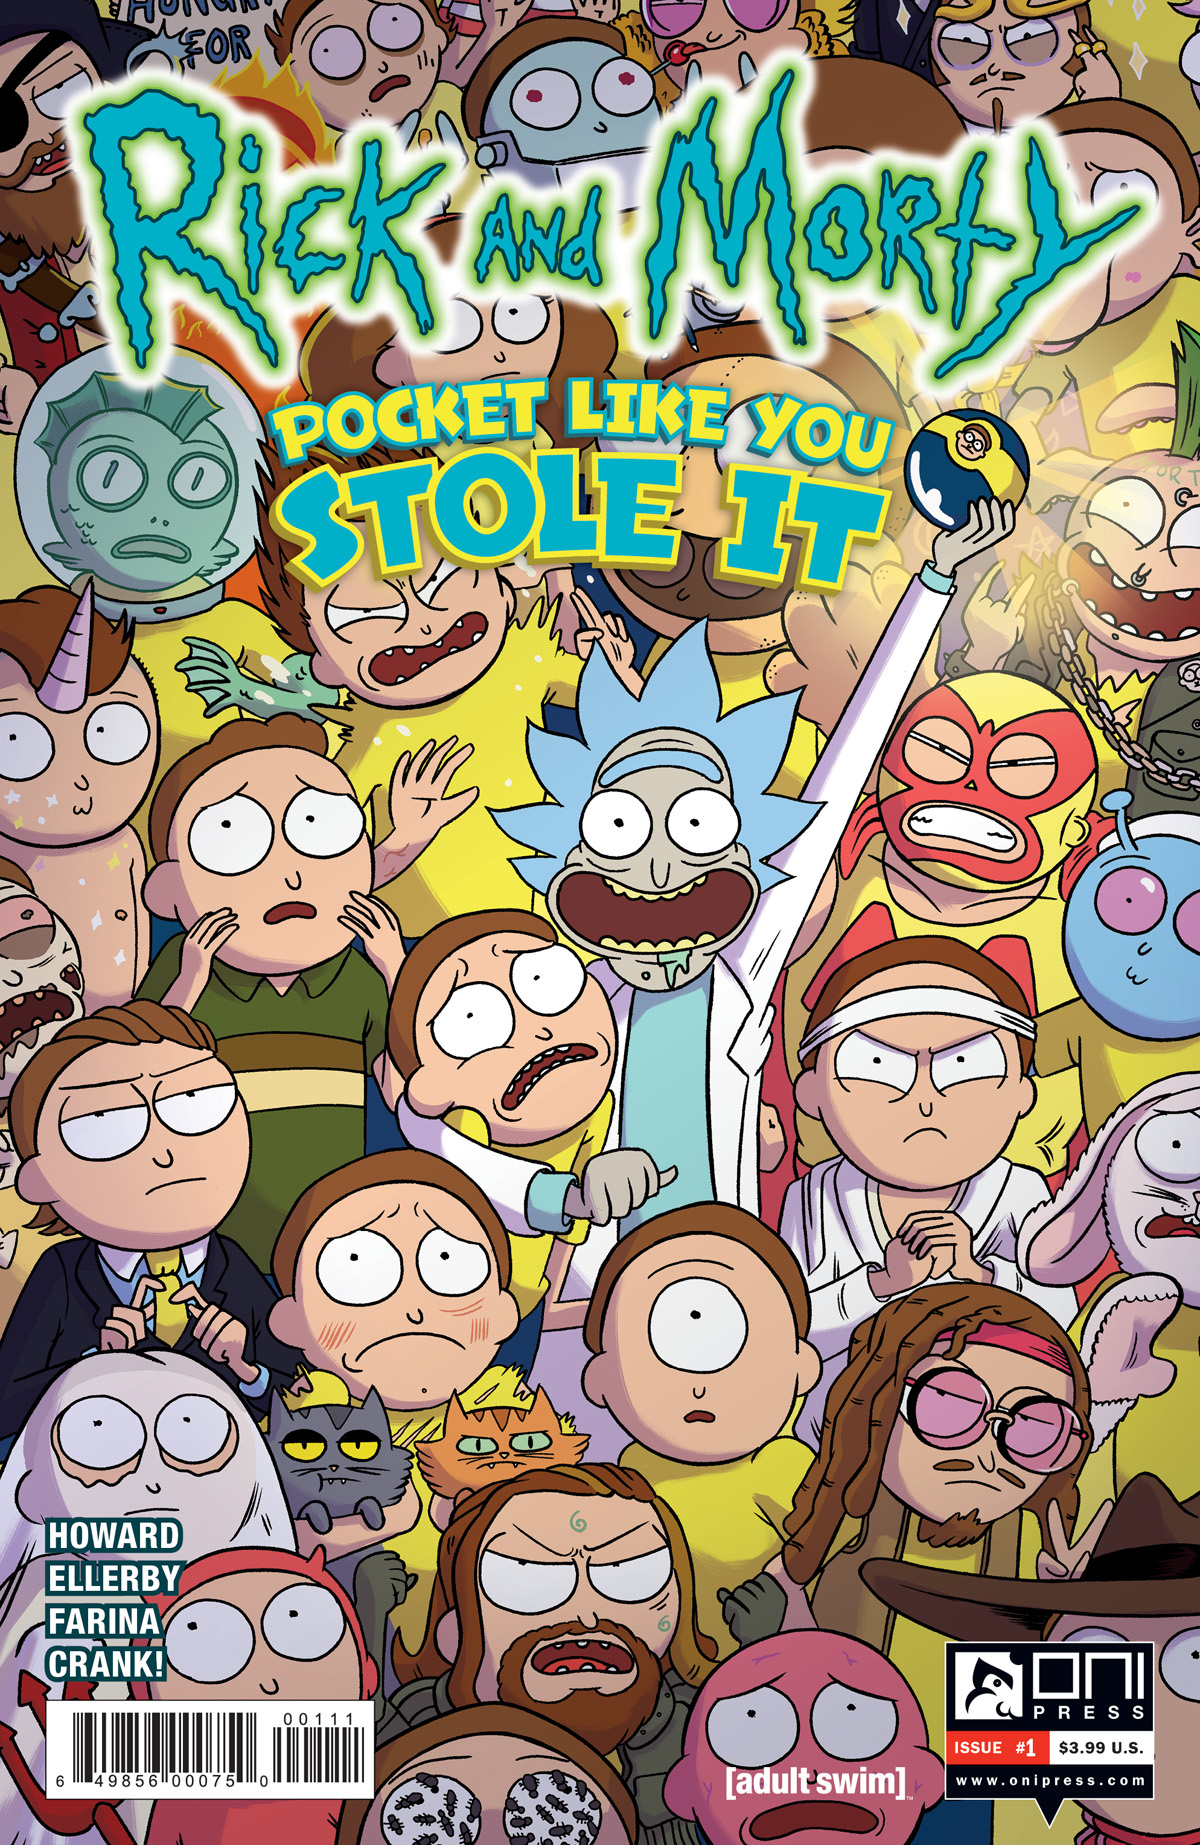 Cover to 'Rick and Morty: Pocket Like You Stole It' #1. Art by Marc Ellerby and Katy Farina/Oni Press